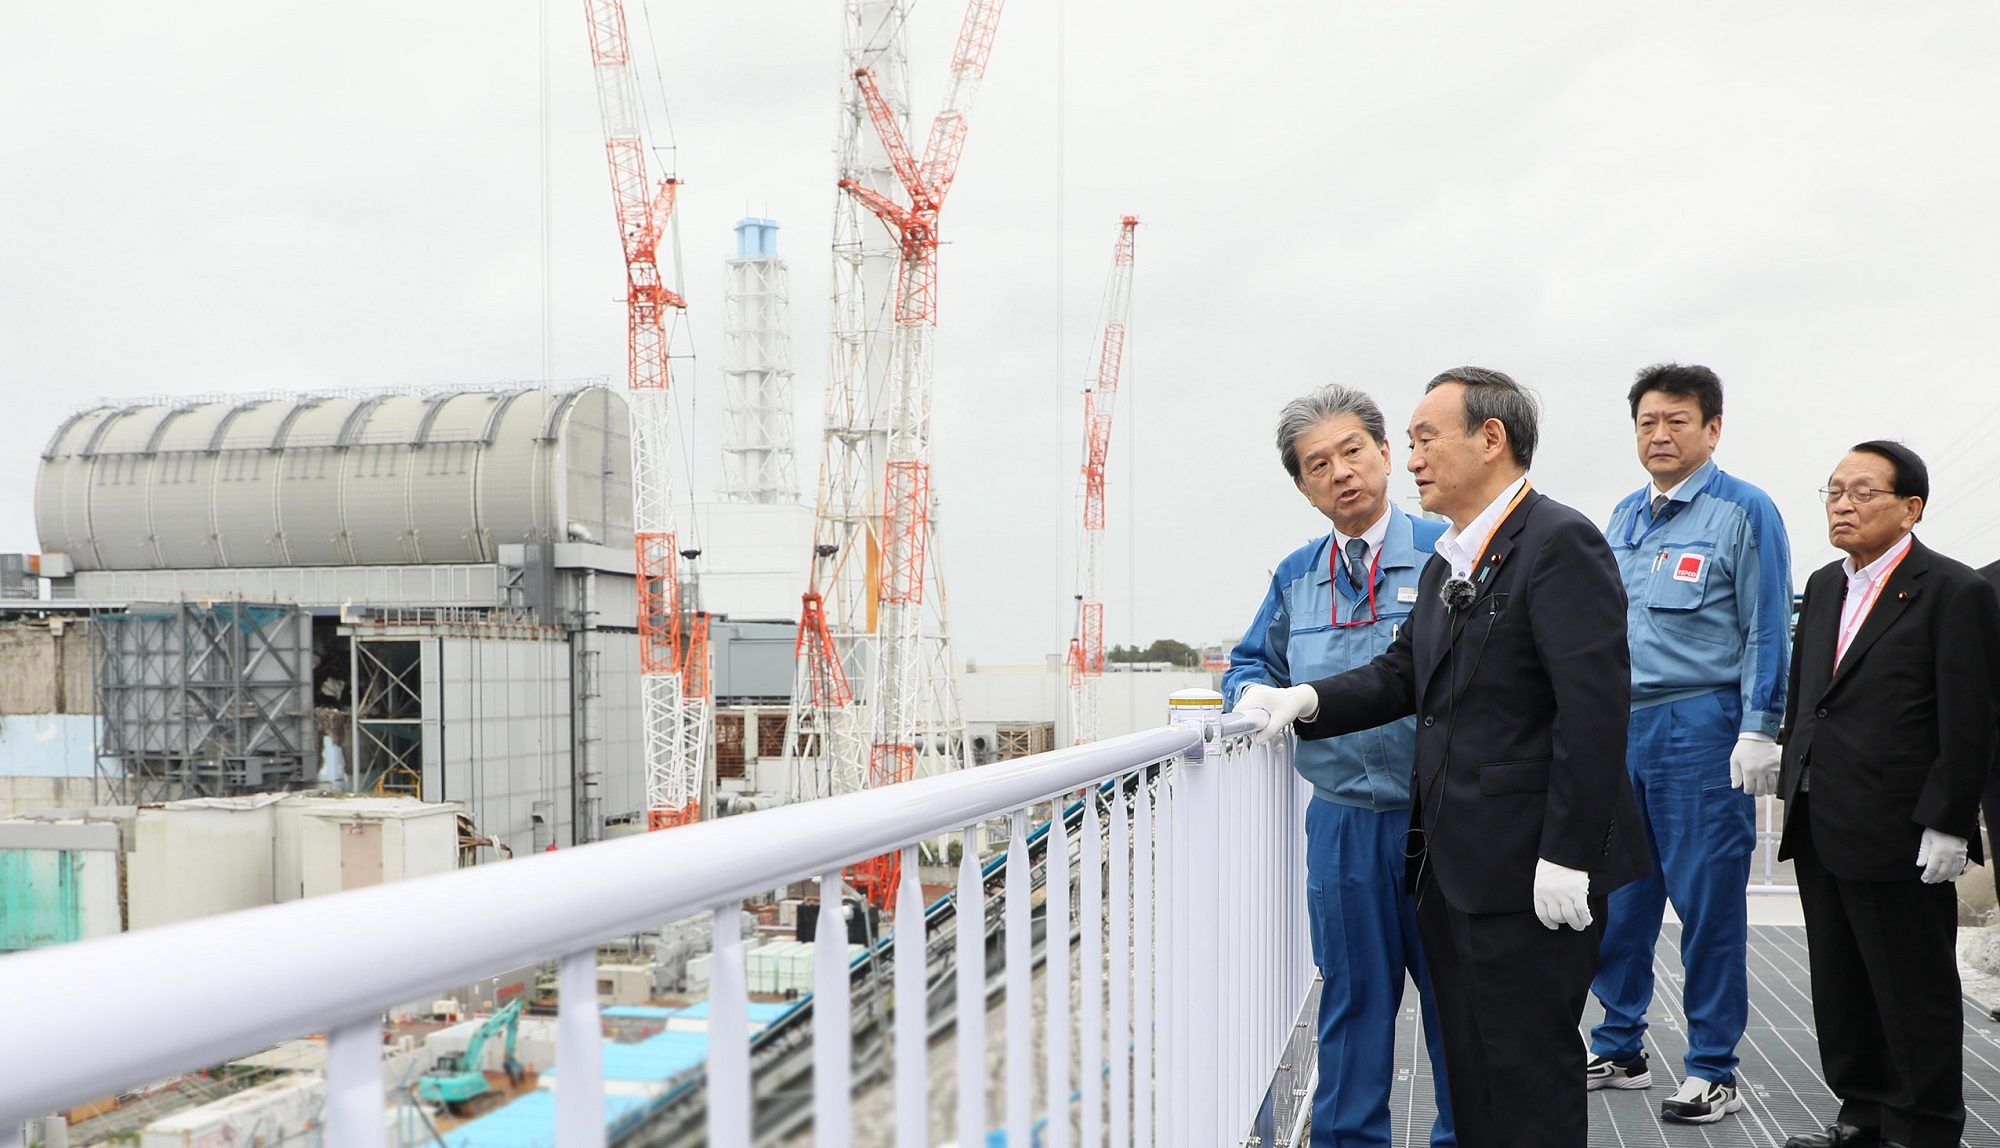 Photograph of the Prime Minister visiting the TEPCO Fukushima Daiichi Nuclear Power Station (4)